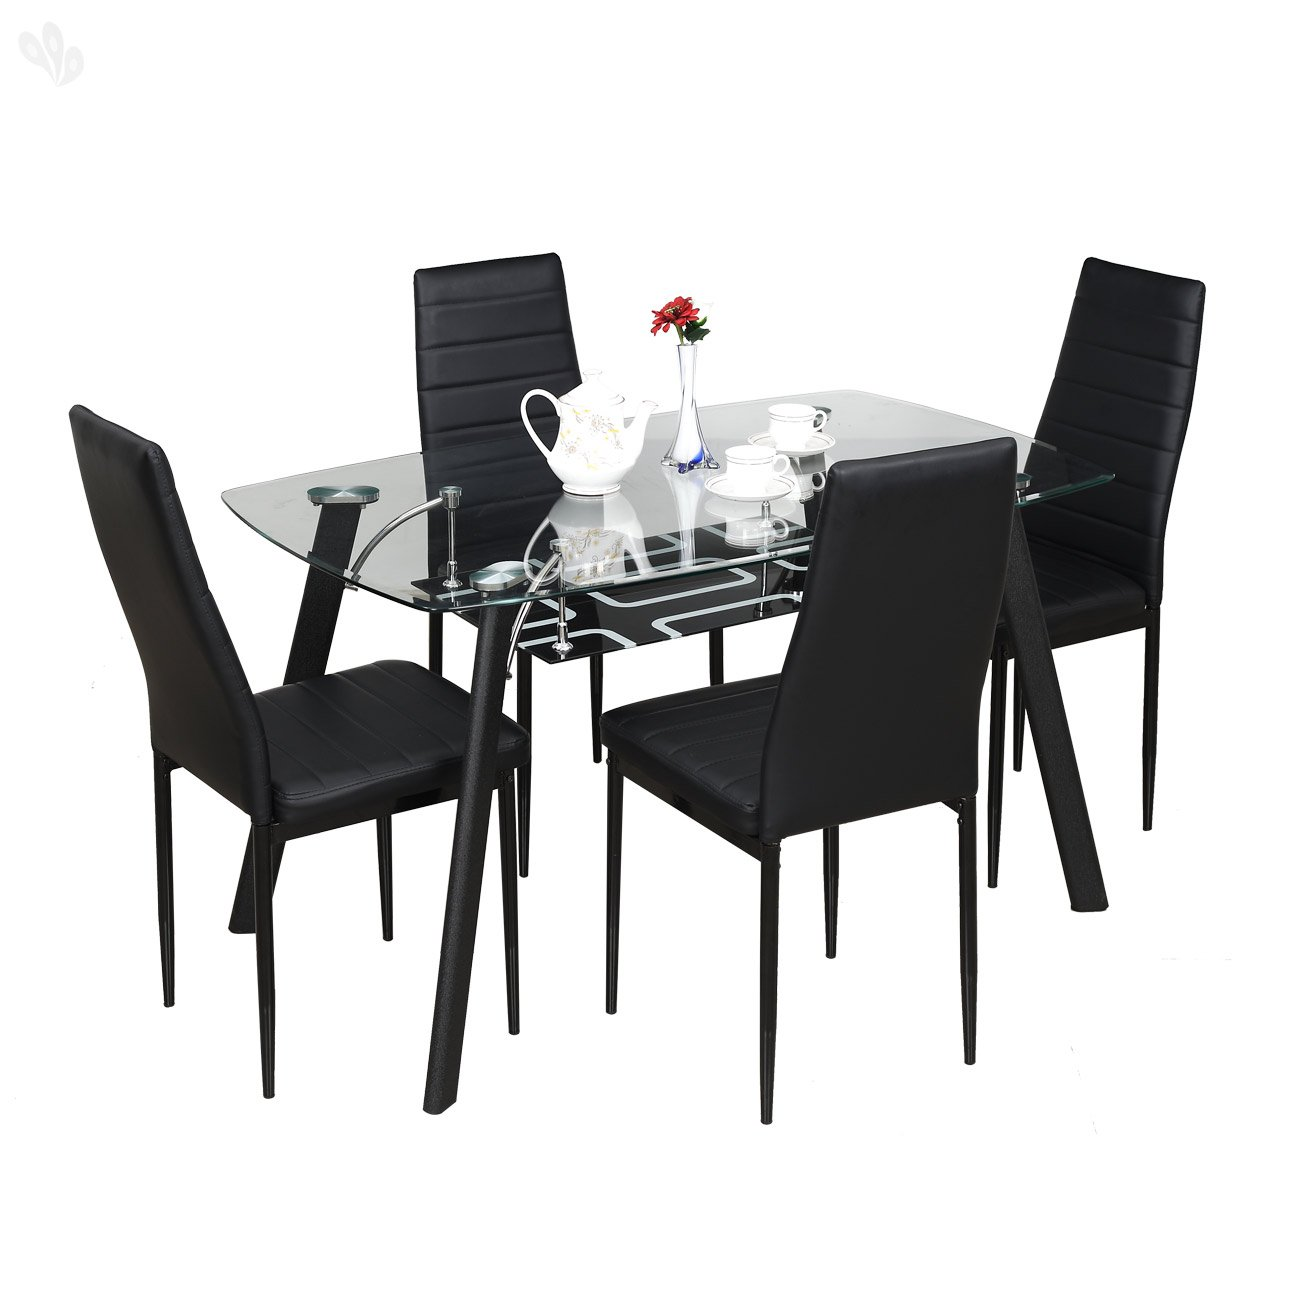 Royal Oak Milan Four Seater Dining Table Set Black